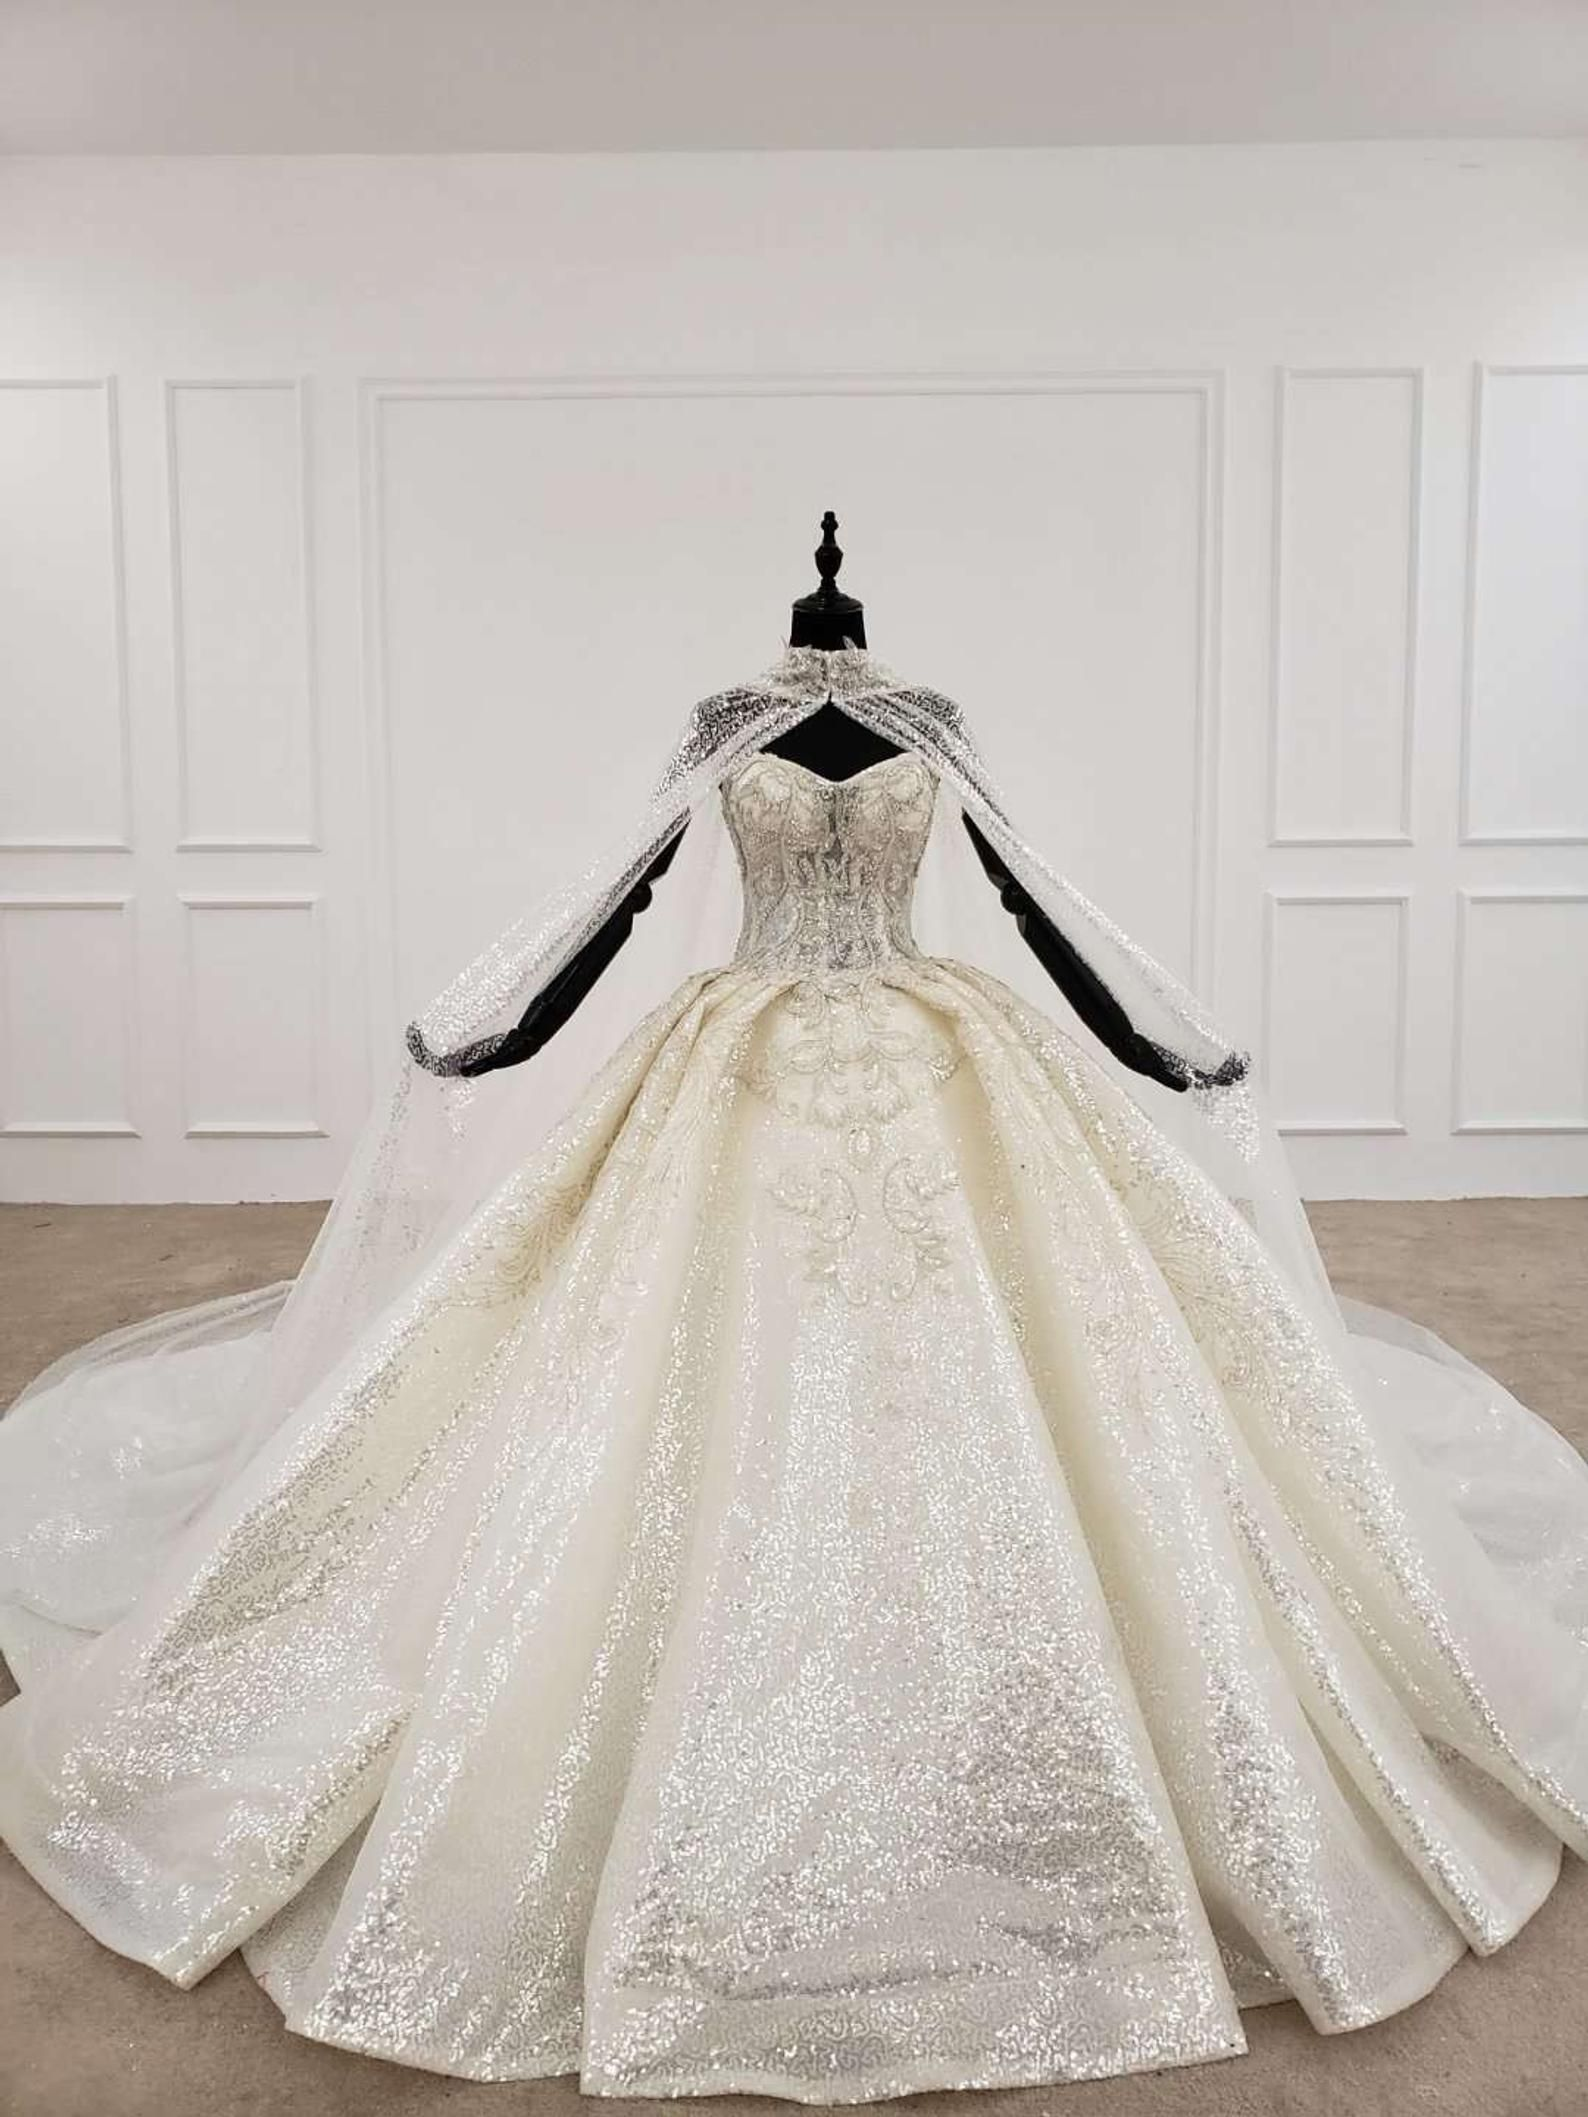 Luxury Bling Ballgown Royal Wedding Dress With Cape Champagne Etsy Cape Wedding Dress Royal Wedding Dress Strapless Wedding Dress Ballgown